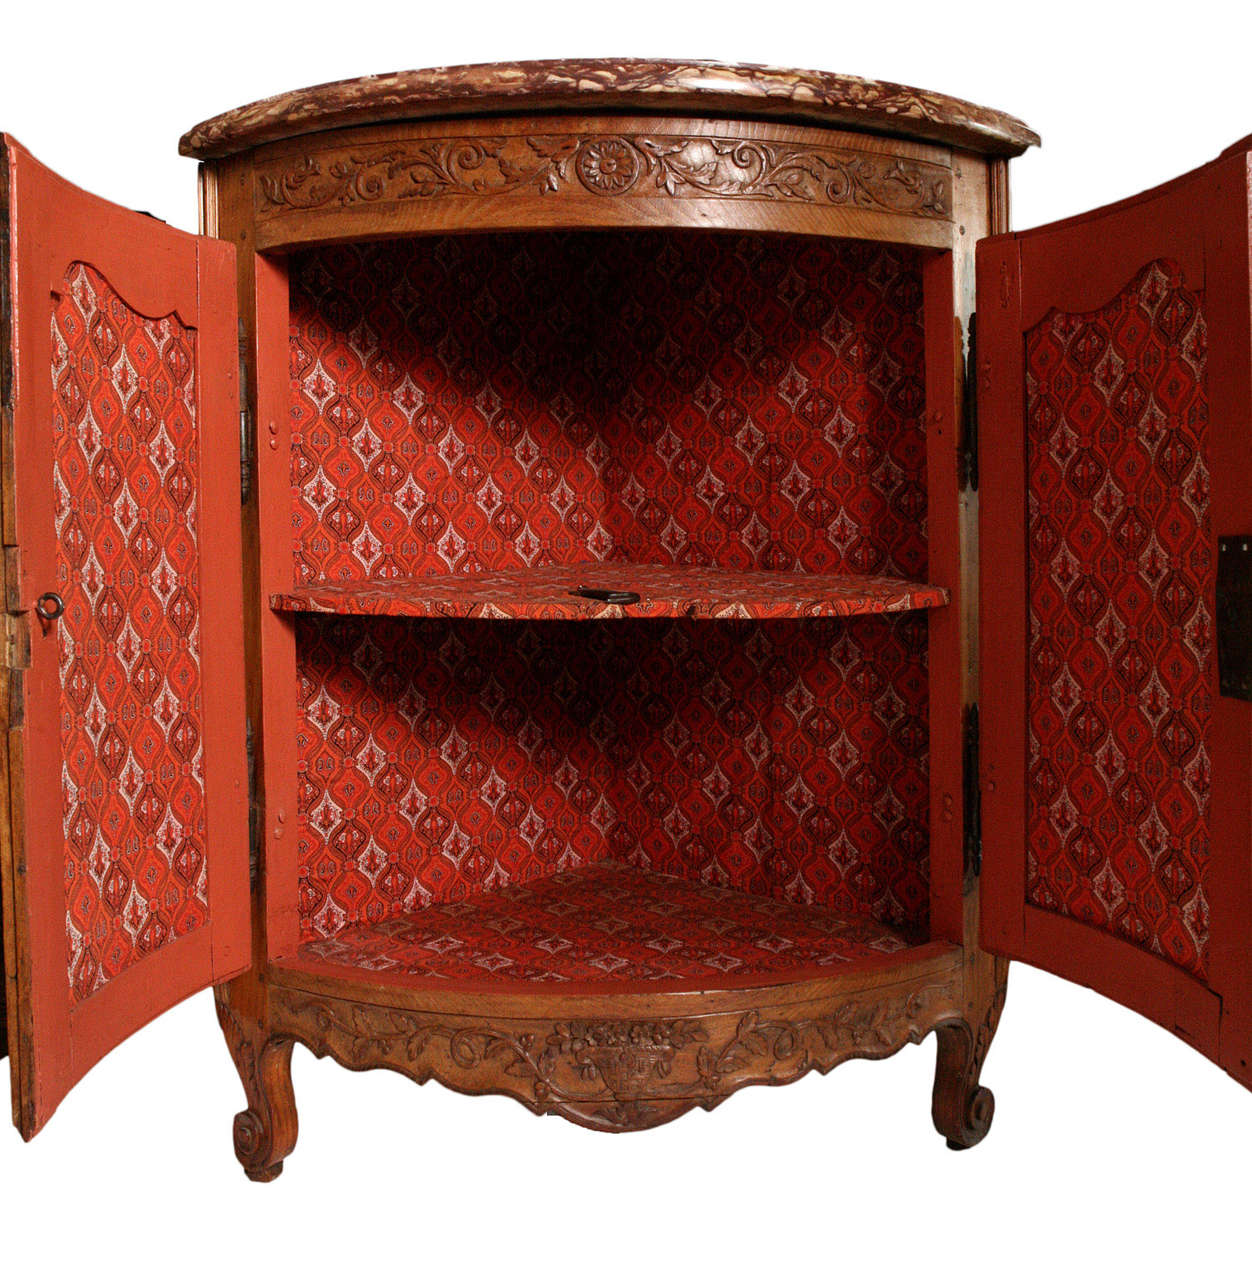 Bowfront corner cabinet with original rouge marble top.  Carved frieze, apron and feet.  Painted interior with fabric.  Lock and key.